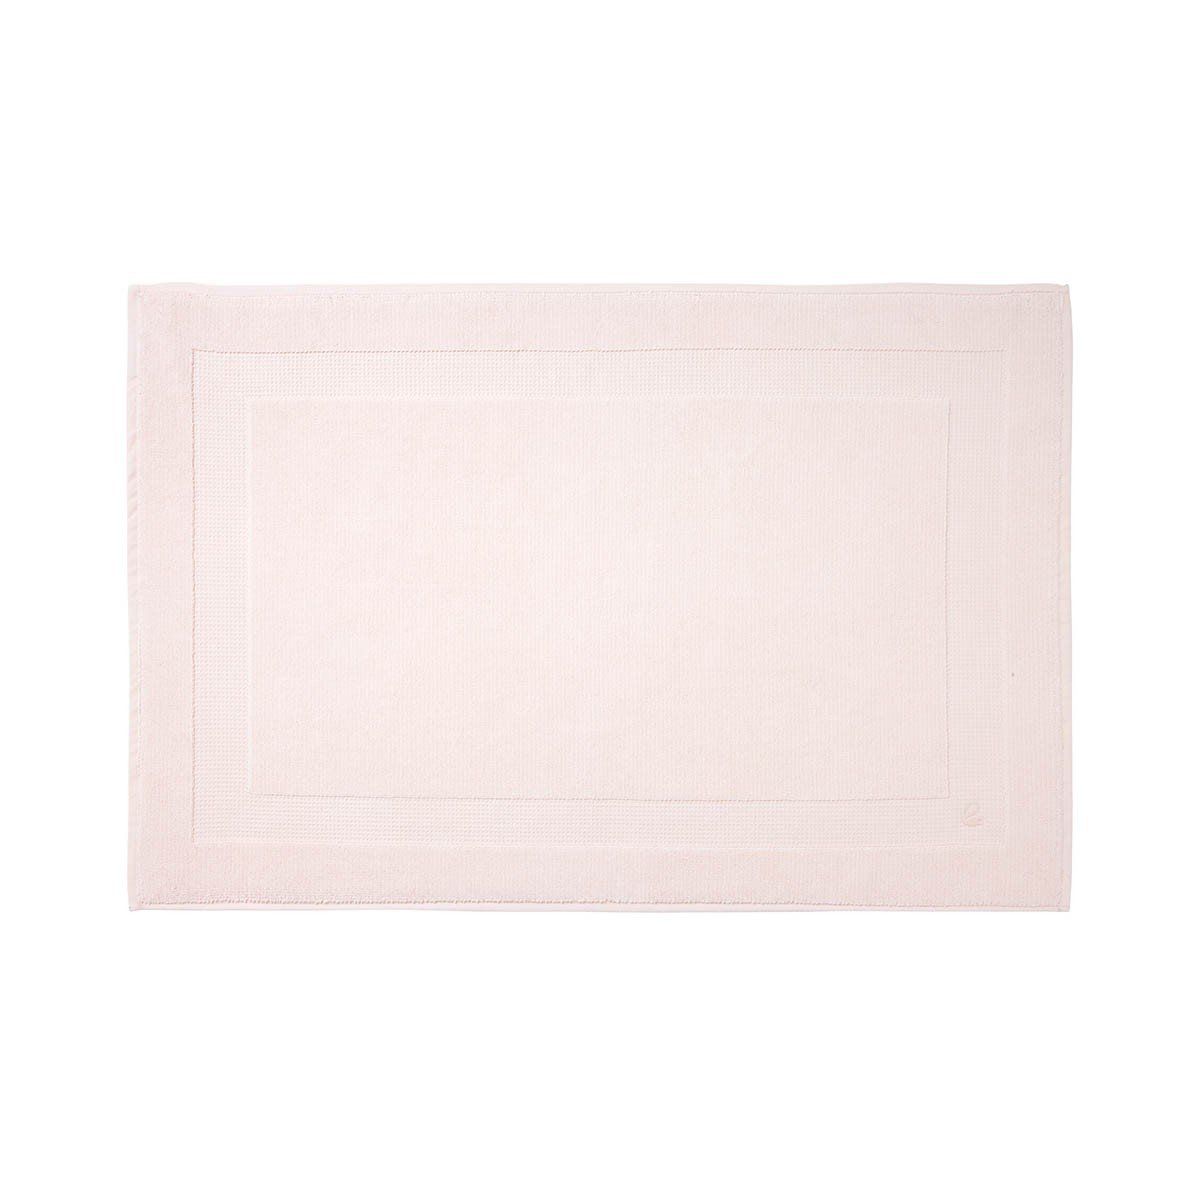 Astree Blush Bath Collection by Yves Delorme | Fig Linens - Light Pink bath linen, bath mat